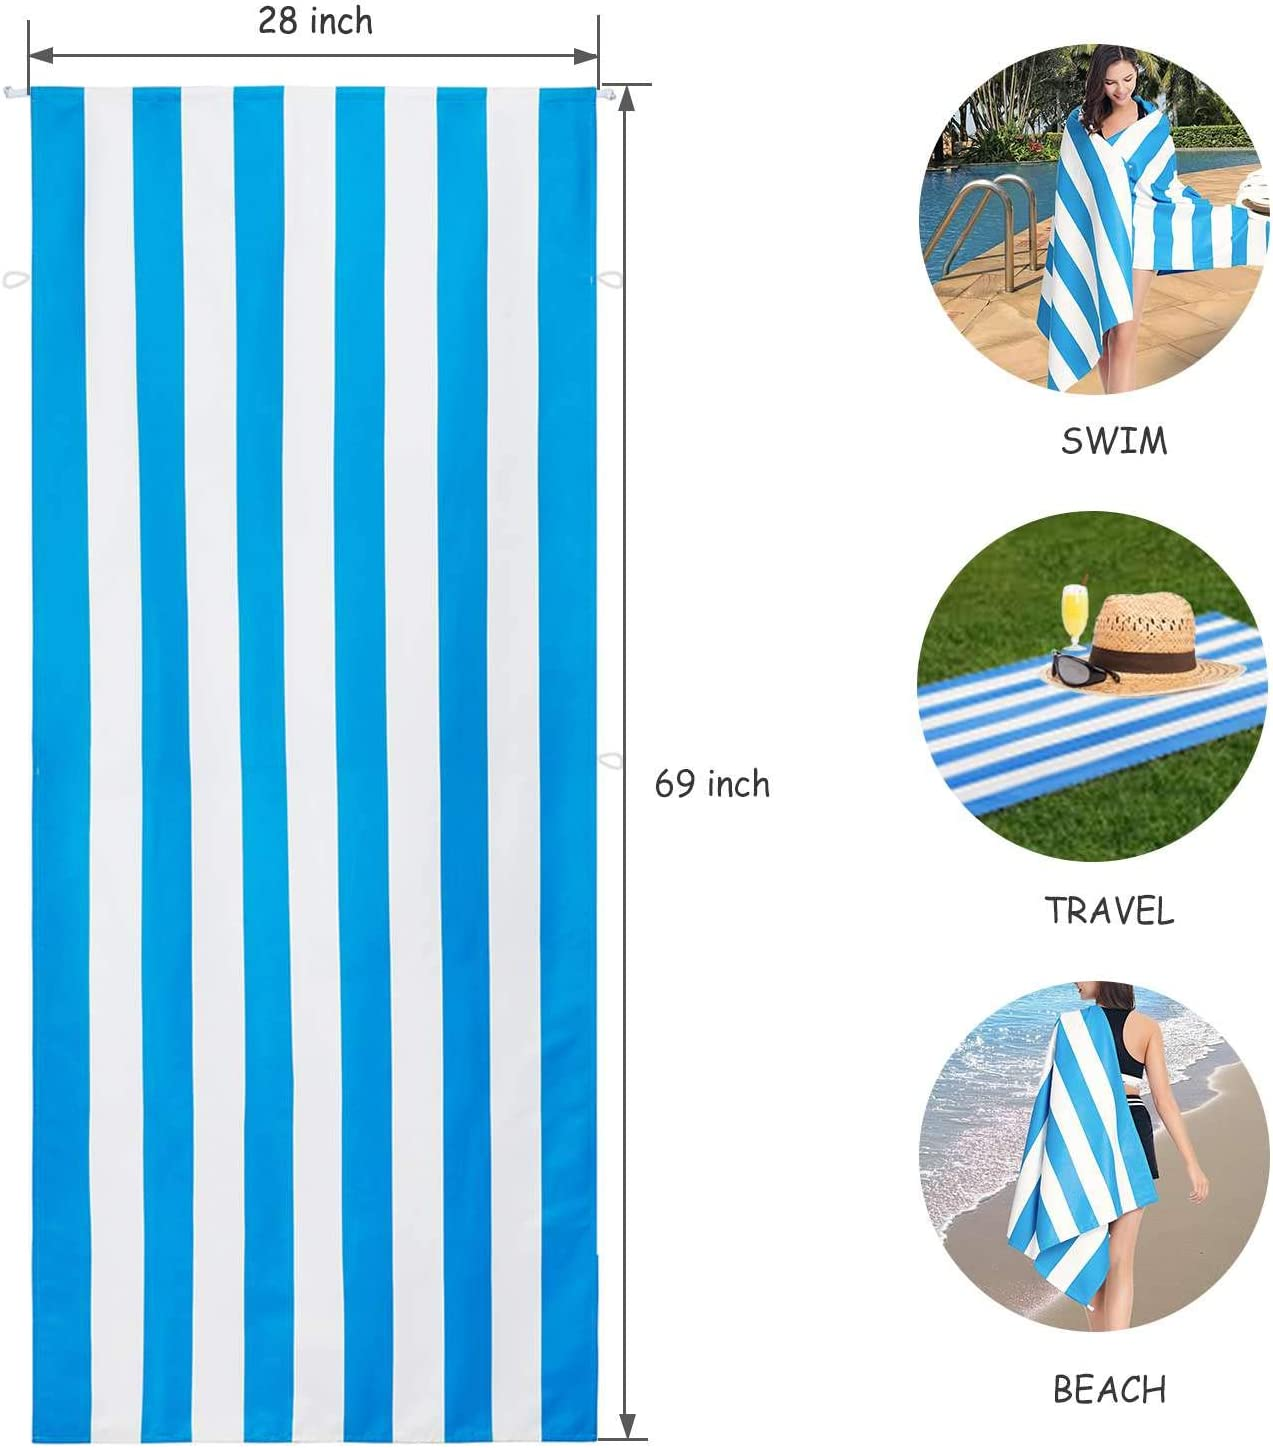 Aegend Fixable Quick-Dry Microfiber Beach Towel for Travel /& Sports Large Travelling Oversized 28 x 69 Portative Lightweight Pool Towel for Swimming Skin- Friendly Odor-Free Camping Towel